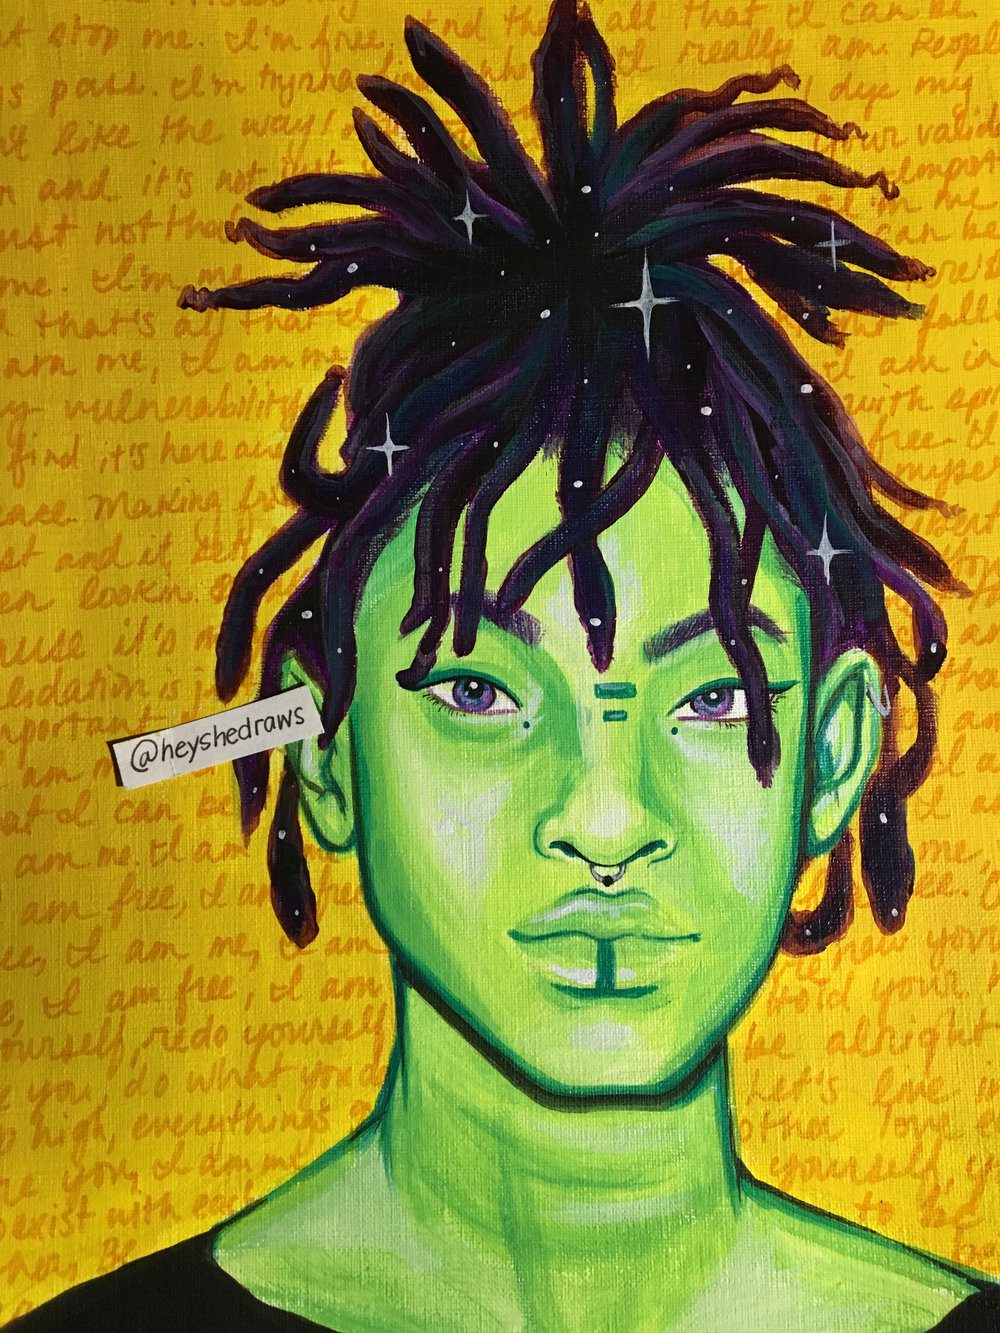 """Willow Smith, """"I Am Me"""" inspired painting by @heyshedraws"""